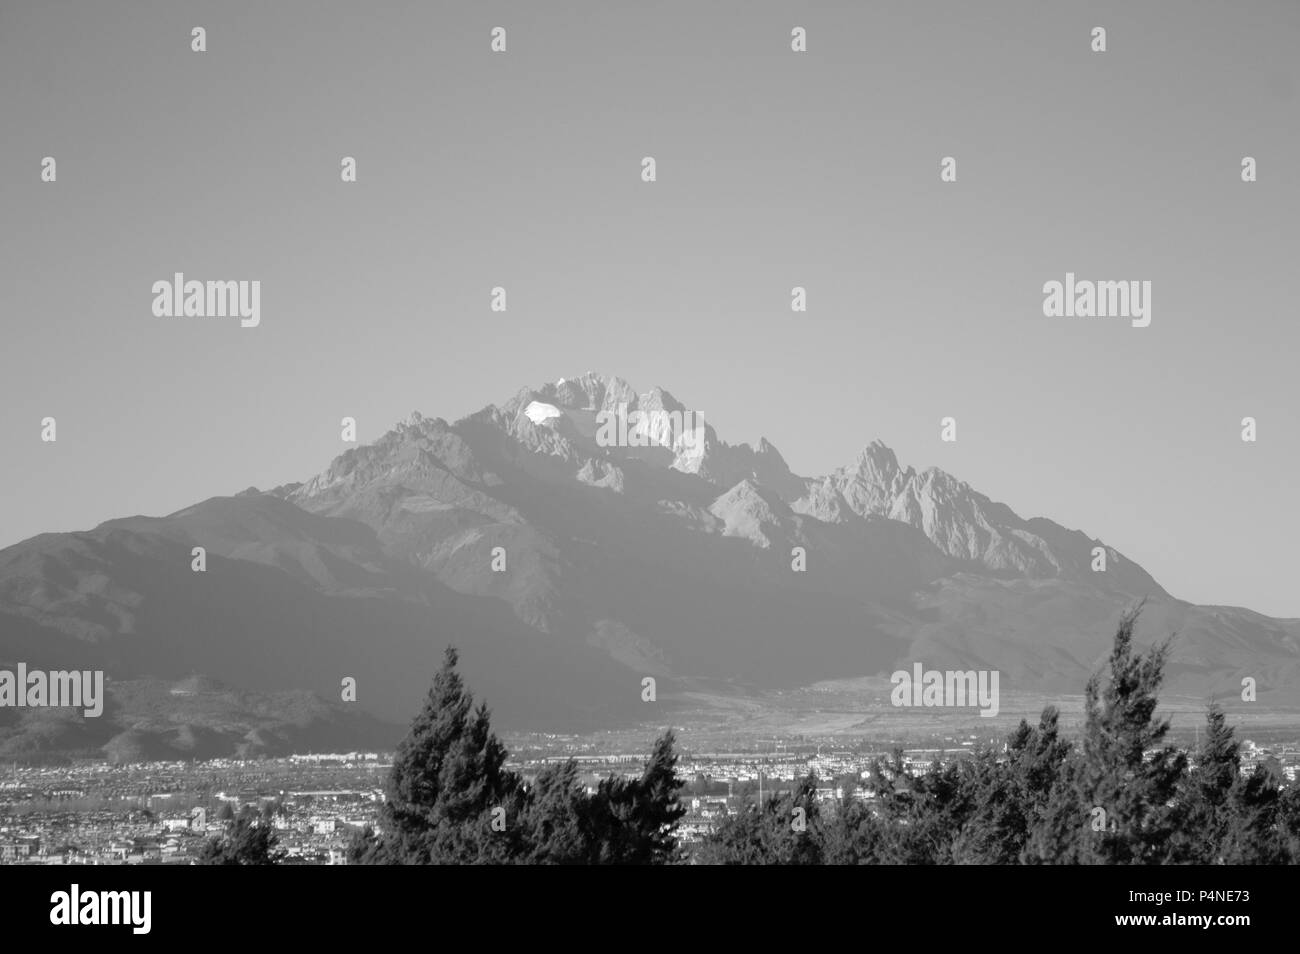 Jade Dragon Snow Mountain (Lijiang, Yunnan, China) - Stock Image